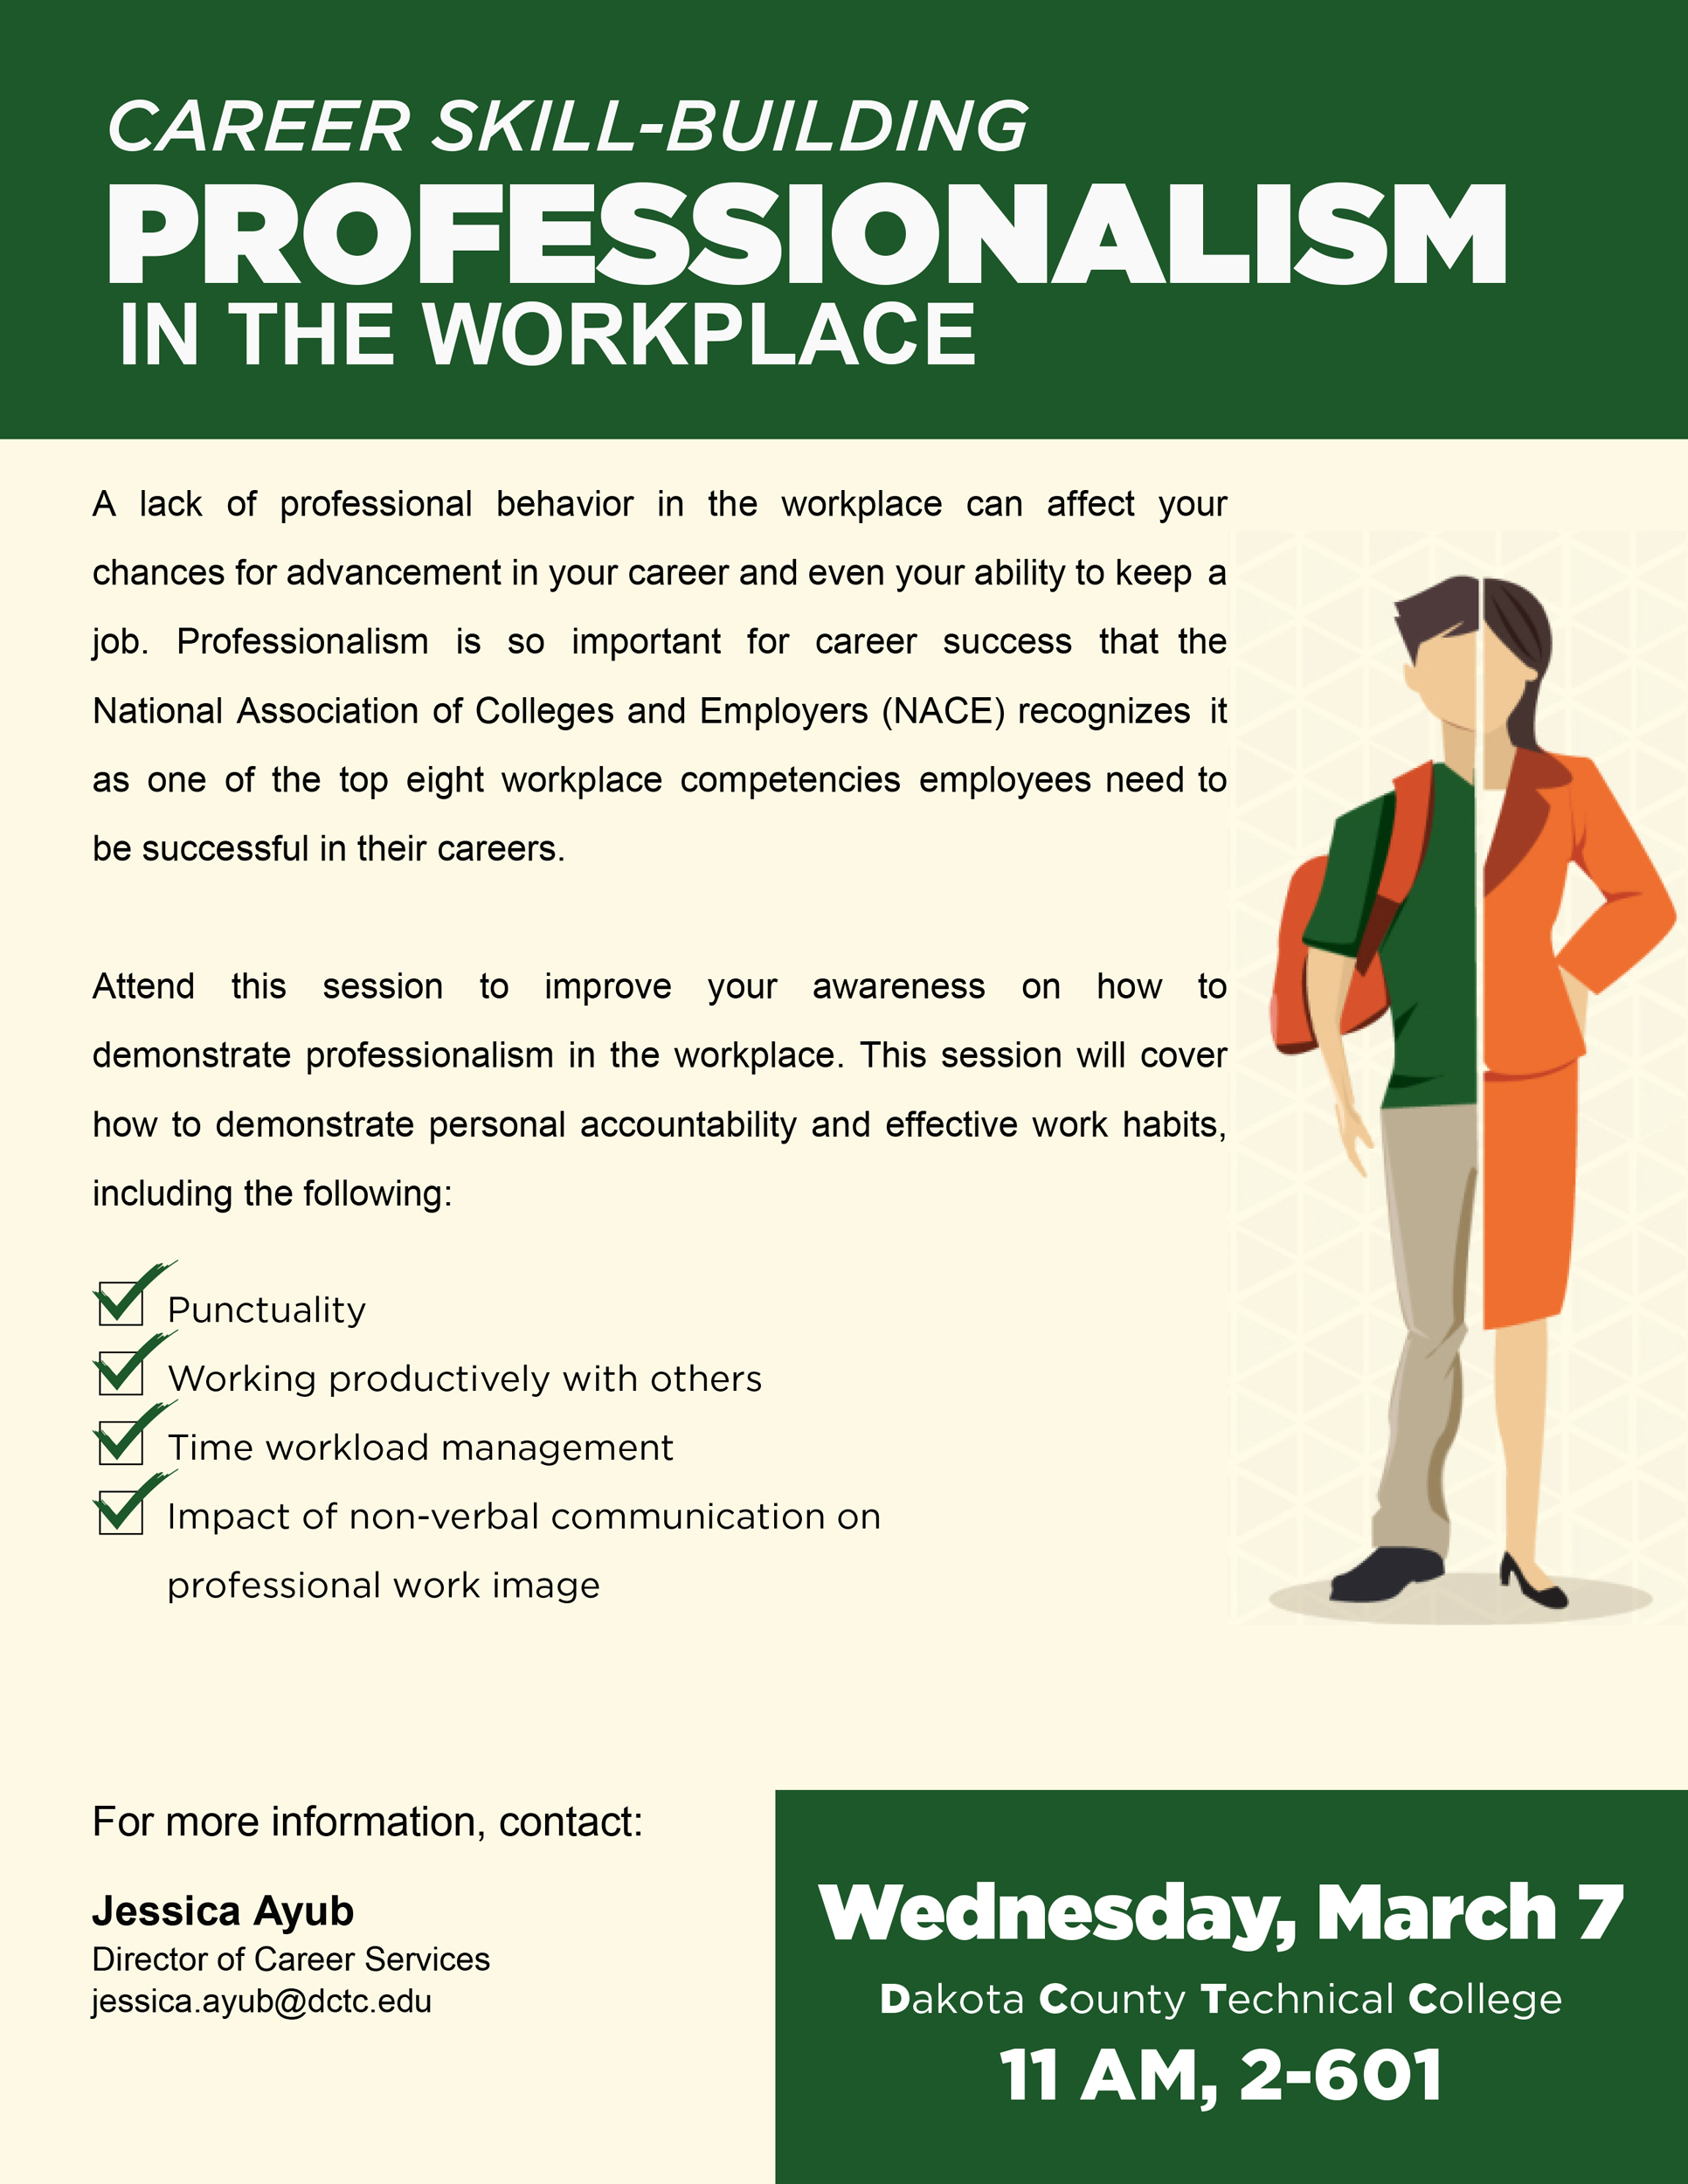 WHAT: Professionalism In The Workplace  Professionalism In The Workplace